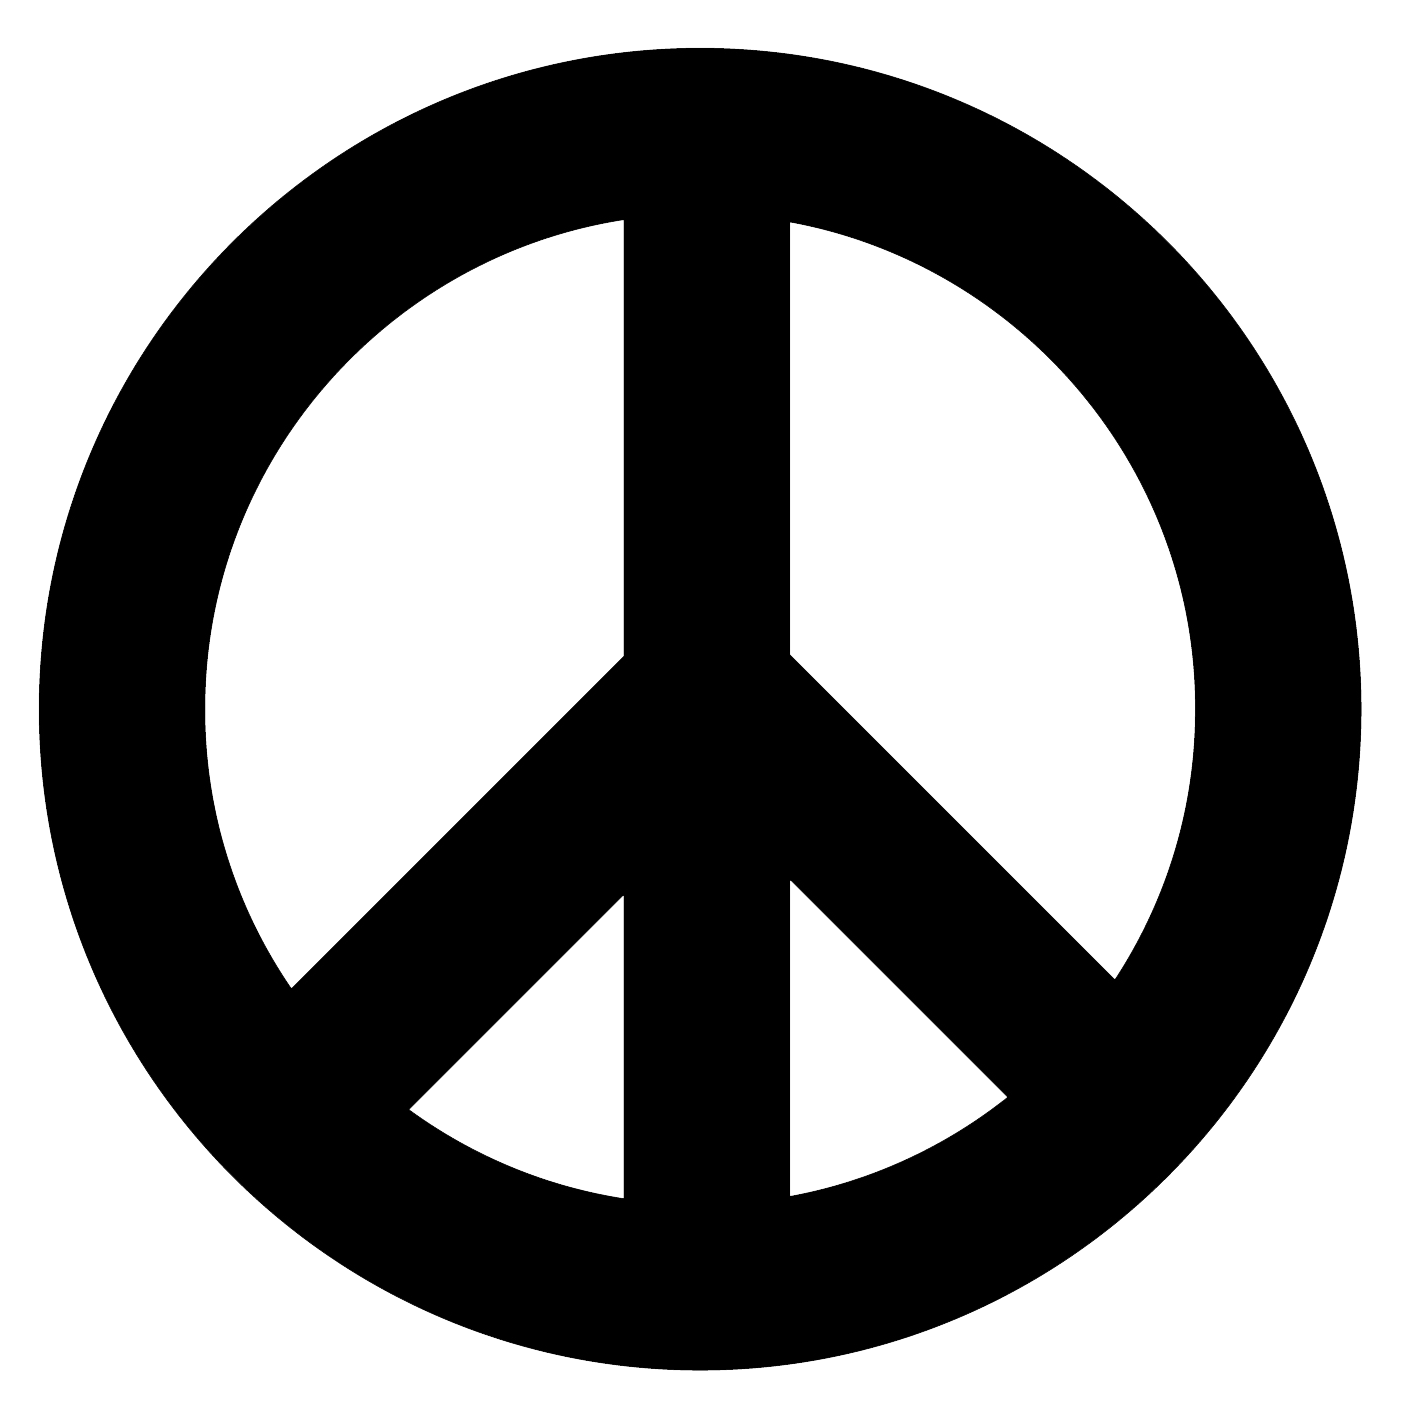 campaign for nuclear disarmament medact